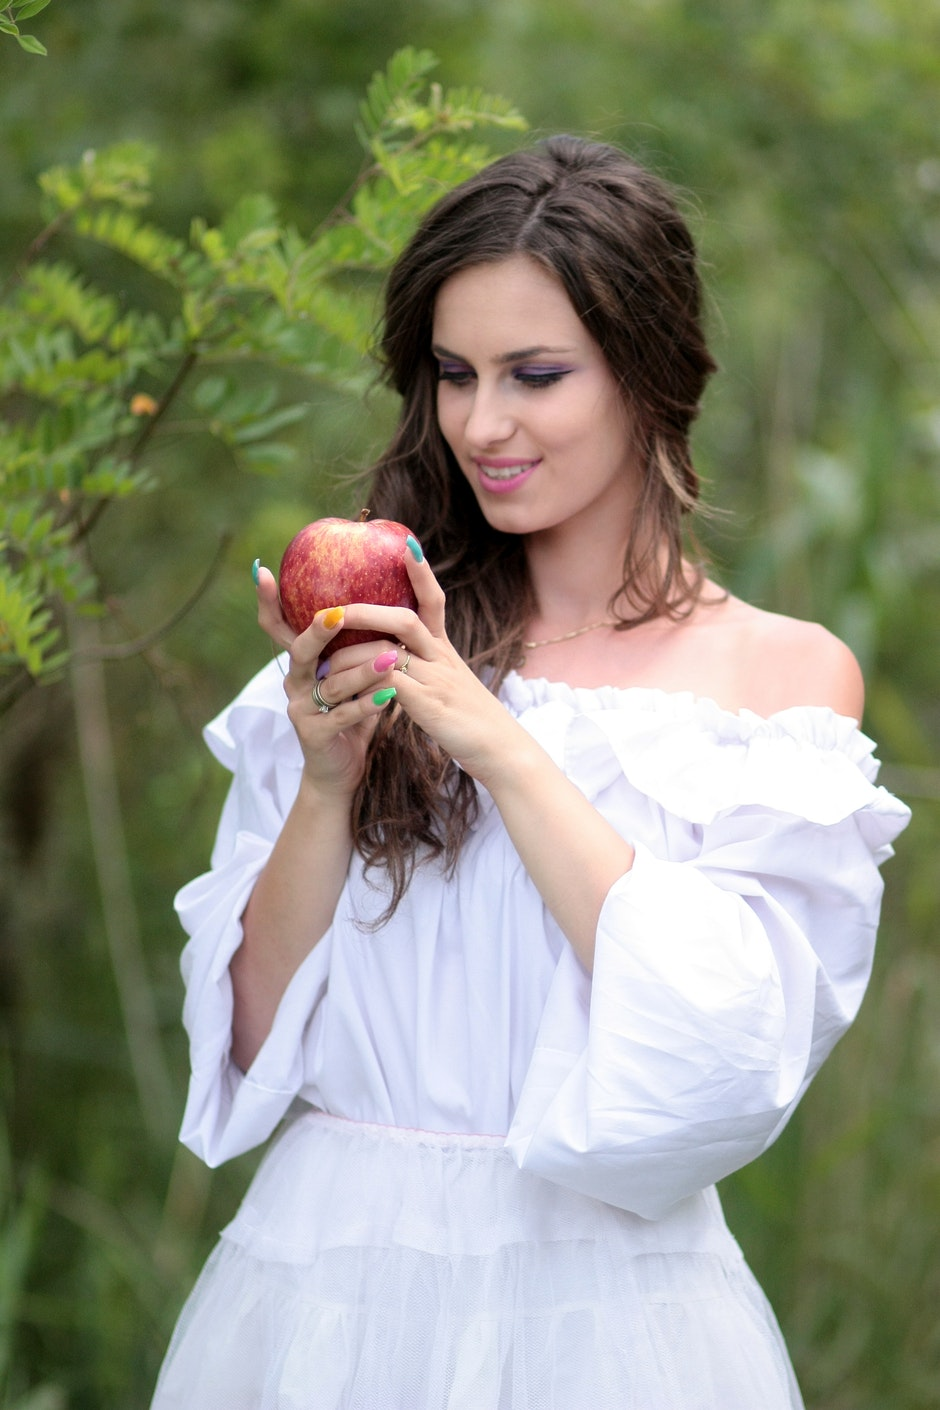 Woman Wearing White Off Shoulder Top Holding Red Apple Fruit